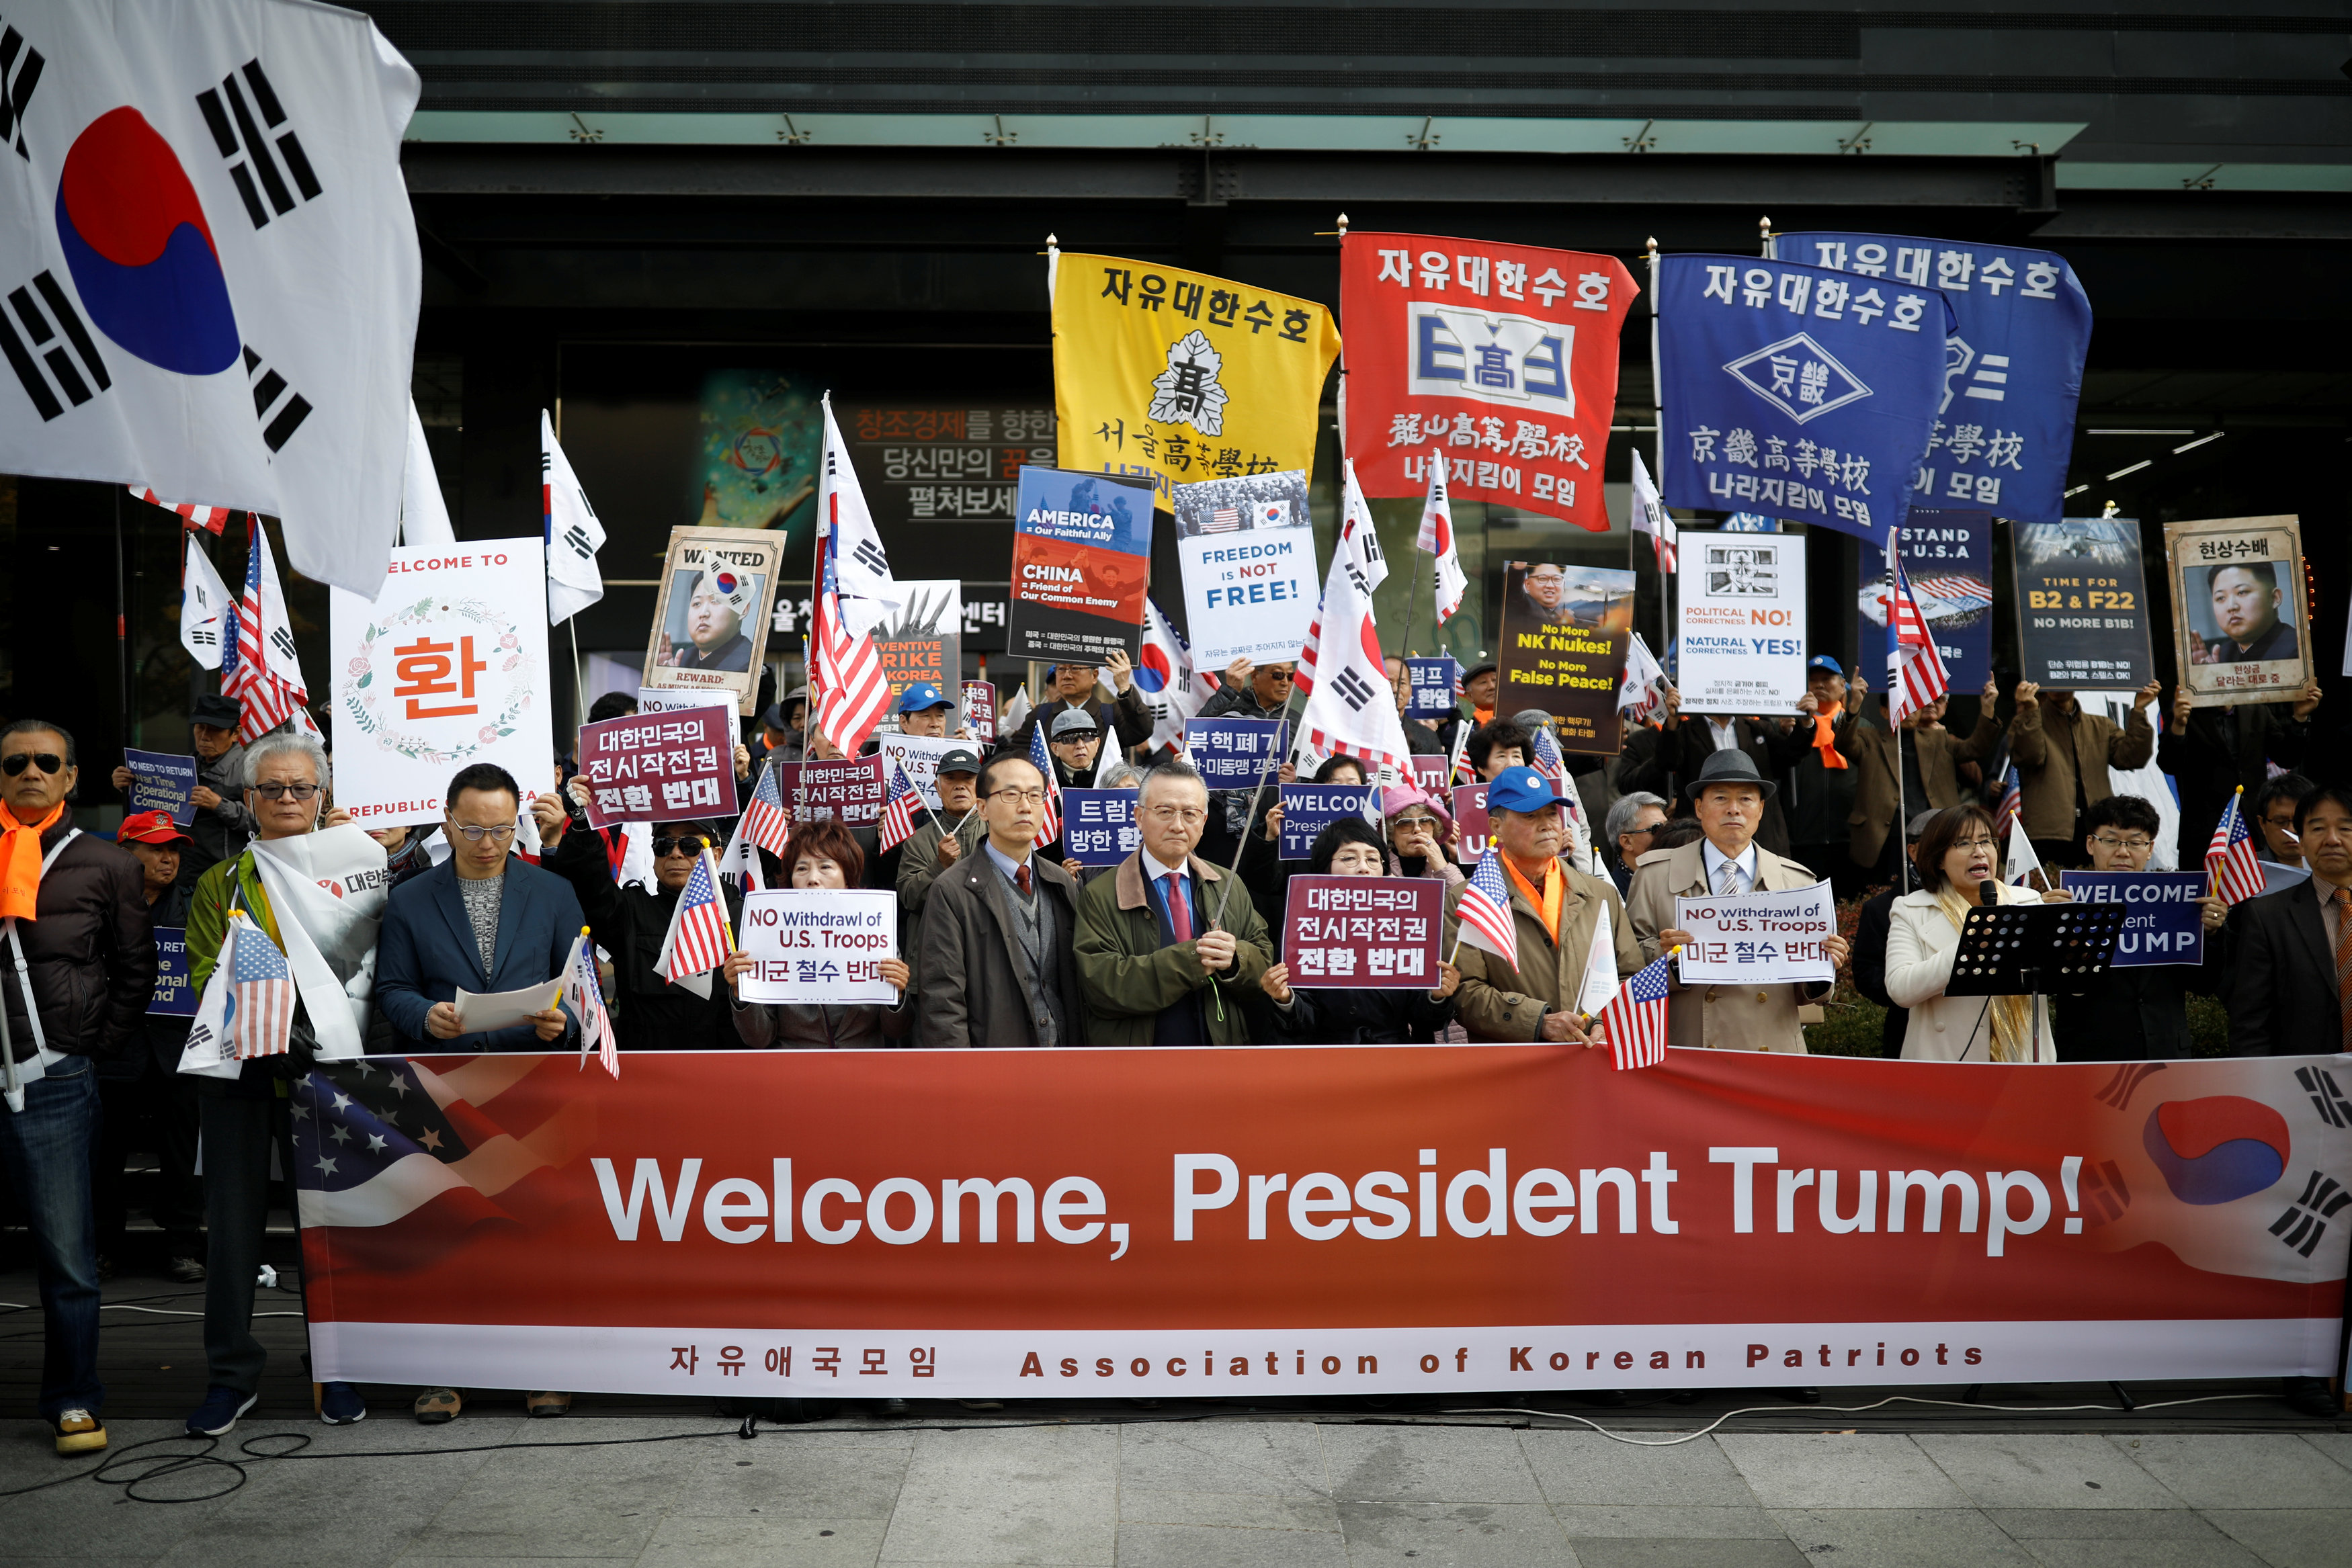 South Korea imposes sanctions on 18 North Koreans a day before Trump visit